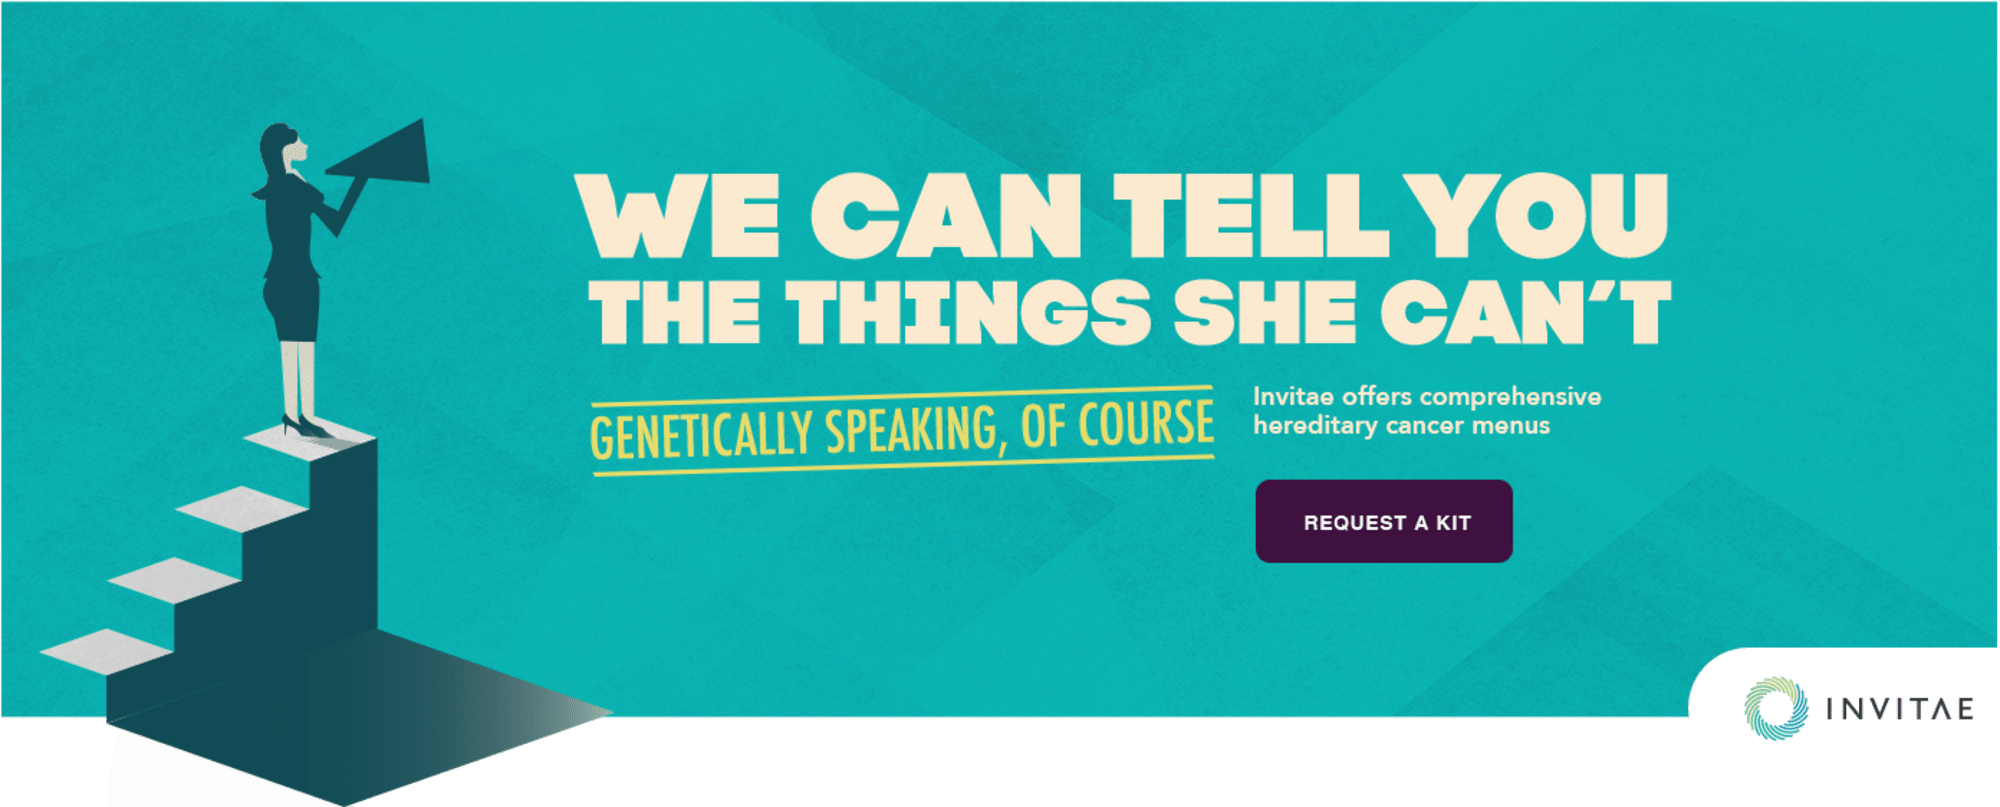 We can tell you the things she can't -- genetically speaking, of course. Invitae offers comprehensive hereditary cancer menus.